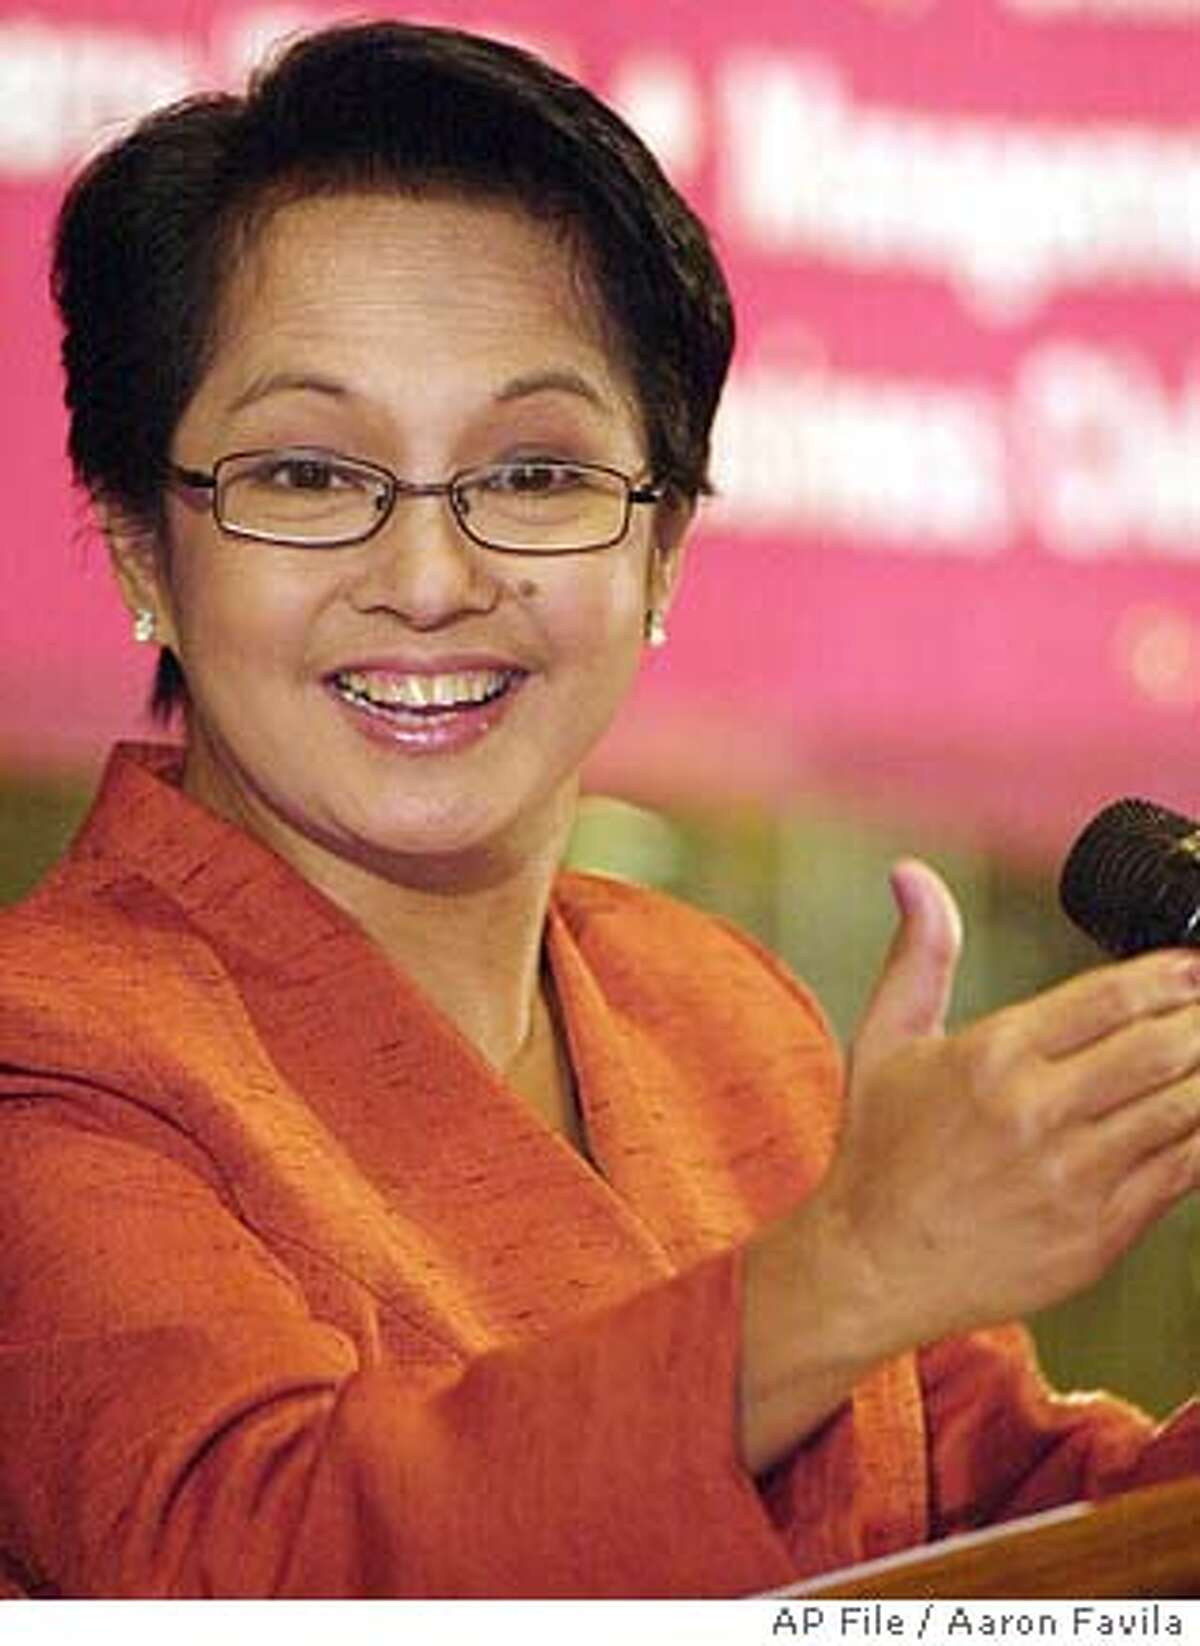 ** FILE ** Philippine President Gloria Macapagal Arroyo gestures as she meets businessmen at the financial district of Makati, south of Manila in this April 14, 2004 file photo. President Gloria Macapagal Arroyo has won another term in office, according to final results Sunday, June 20, 2004, from the May 10 election. (AP Photo/Aaron Favila) Ran on: 06-21-2004 Gloria Macapagal Arroyo won the Philippine presidential election by 1,123,576 votes.